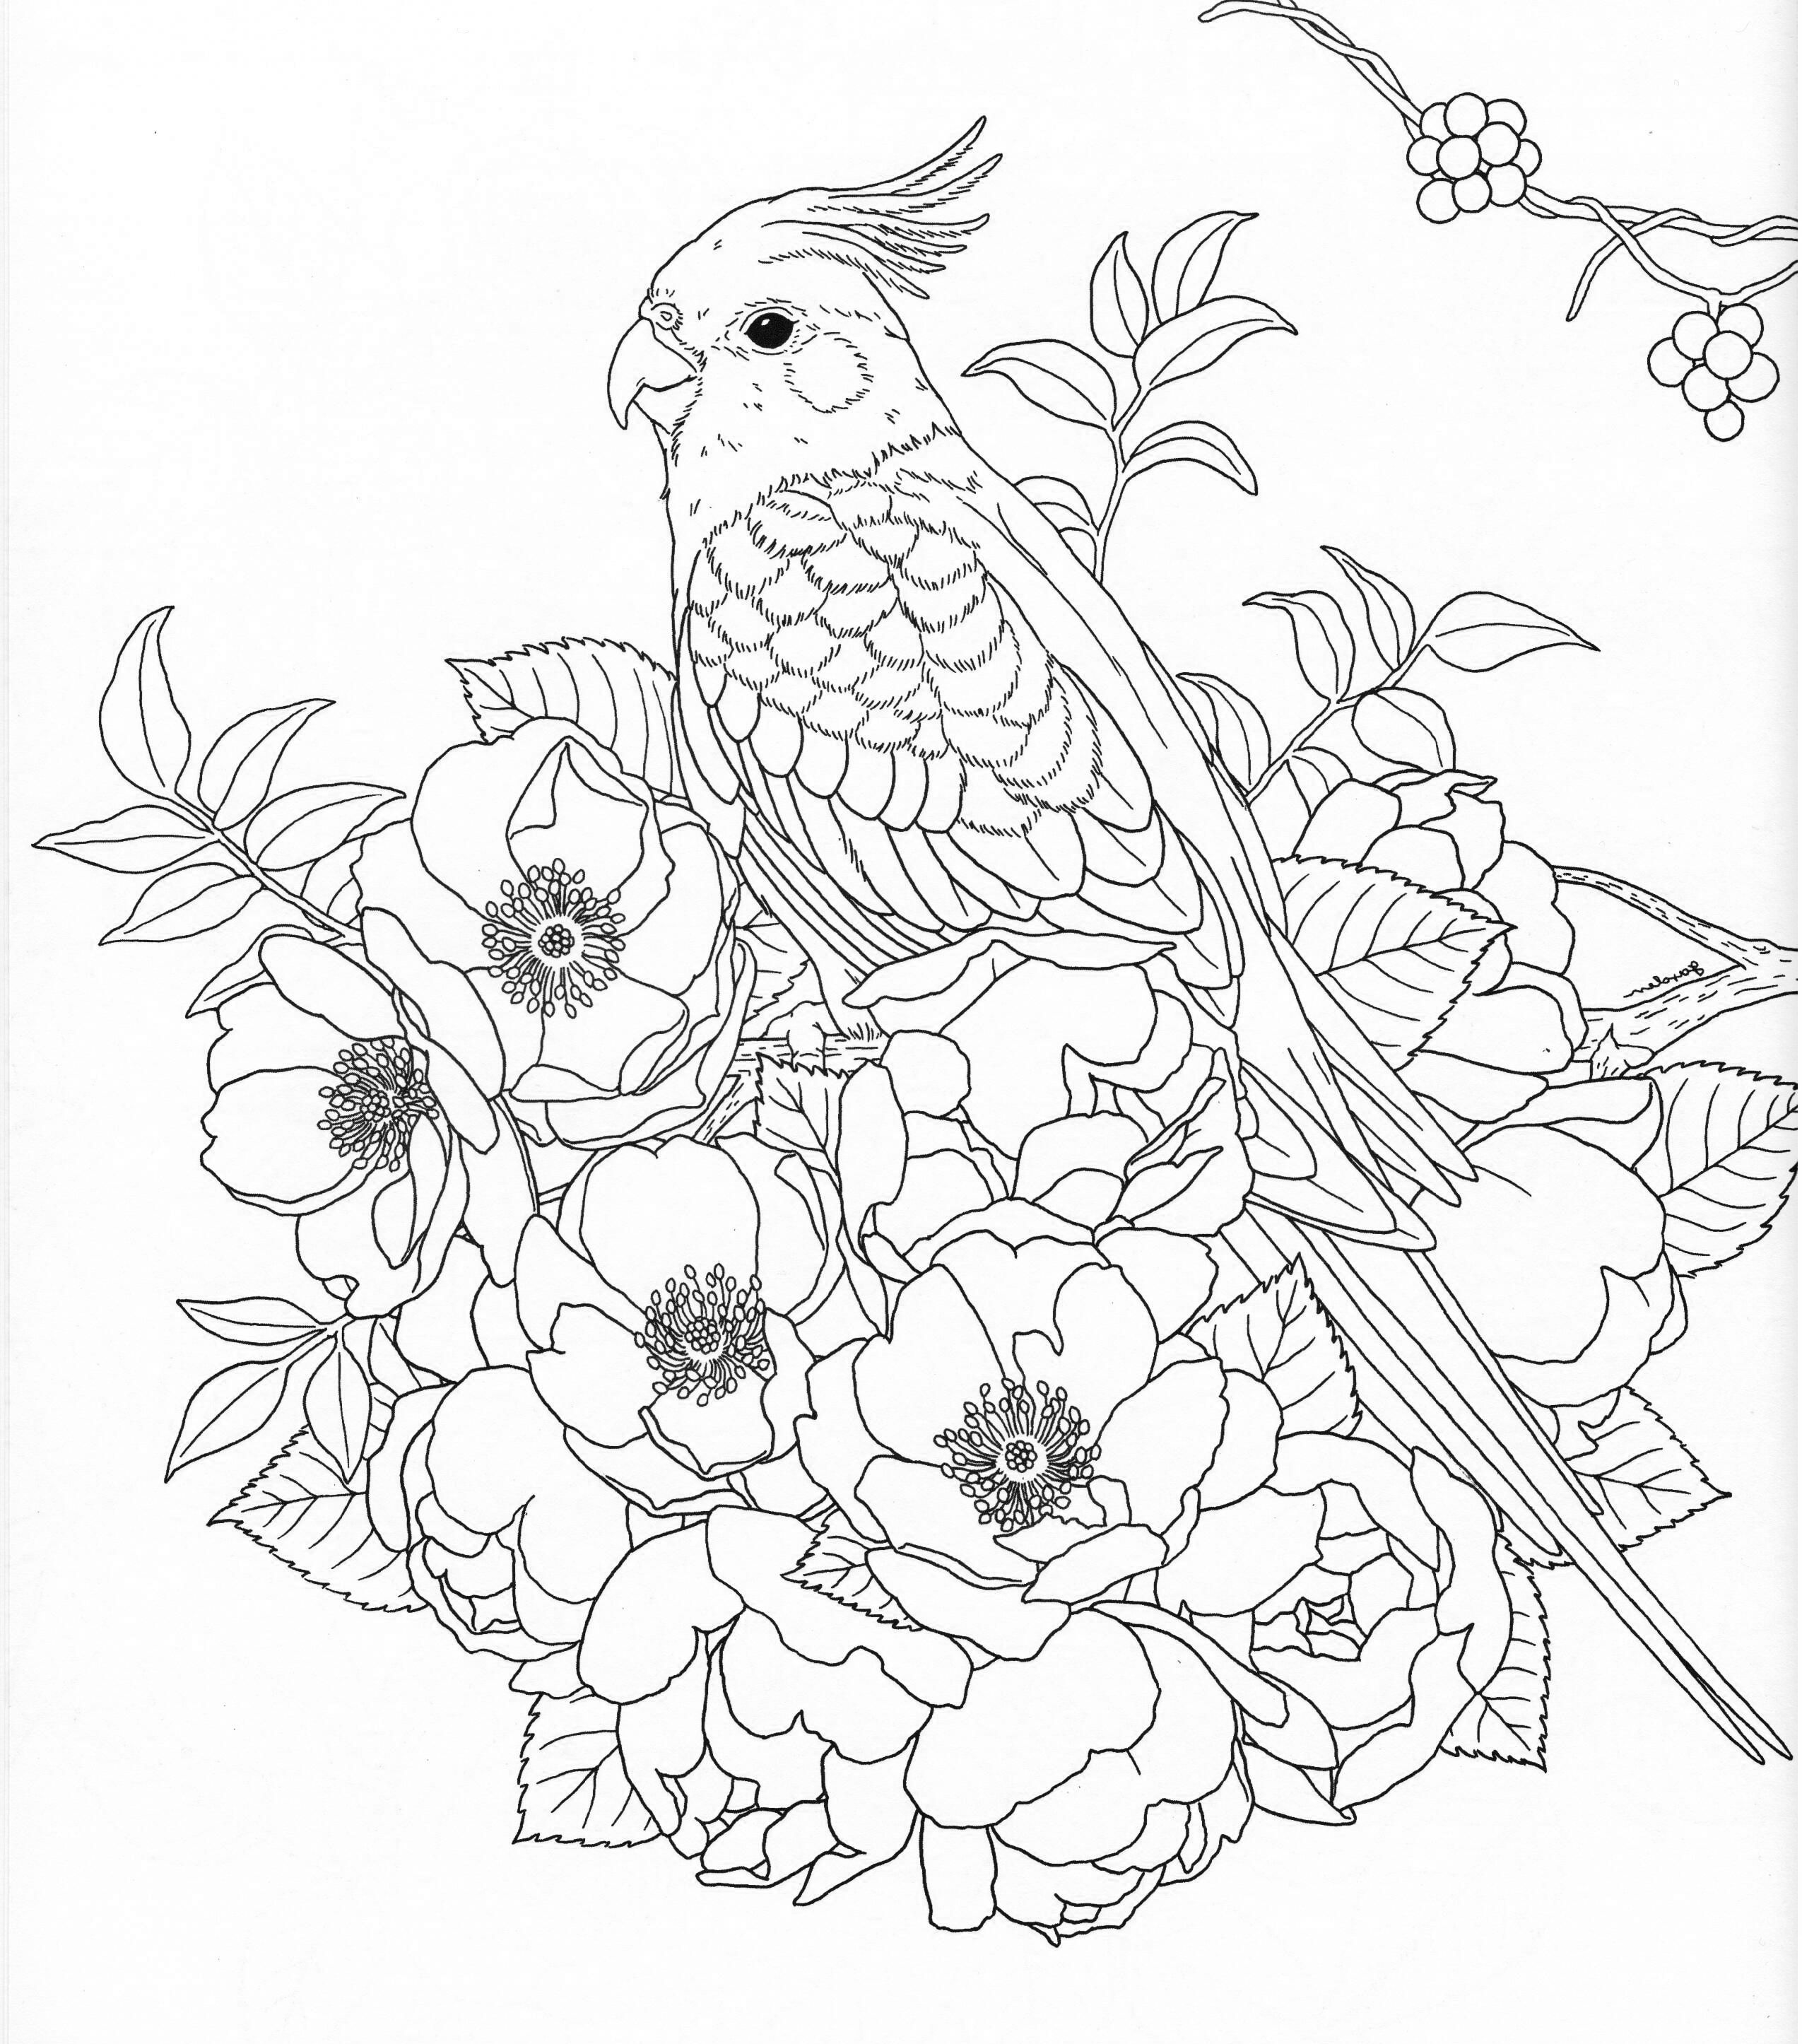 Harmony Of Nature Adult Coloring Book Pg 30